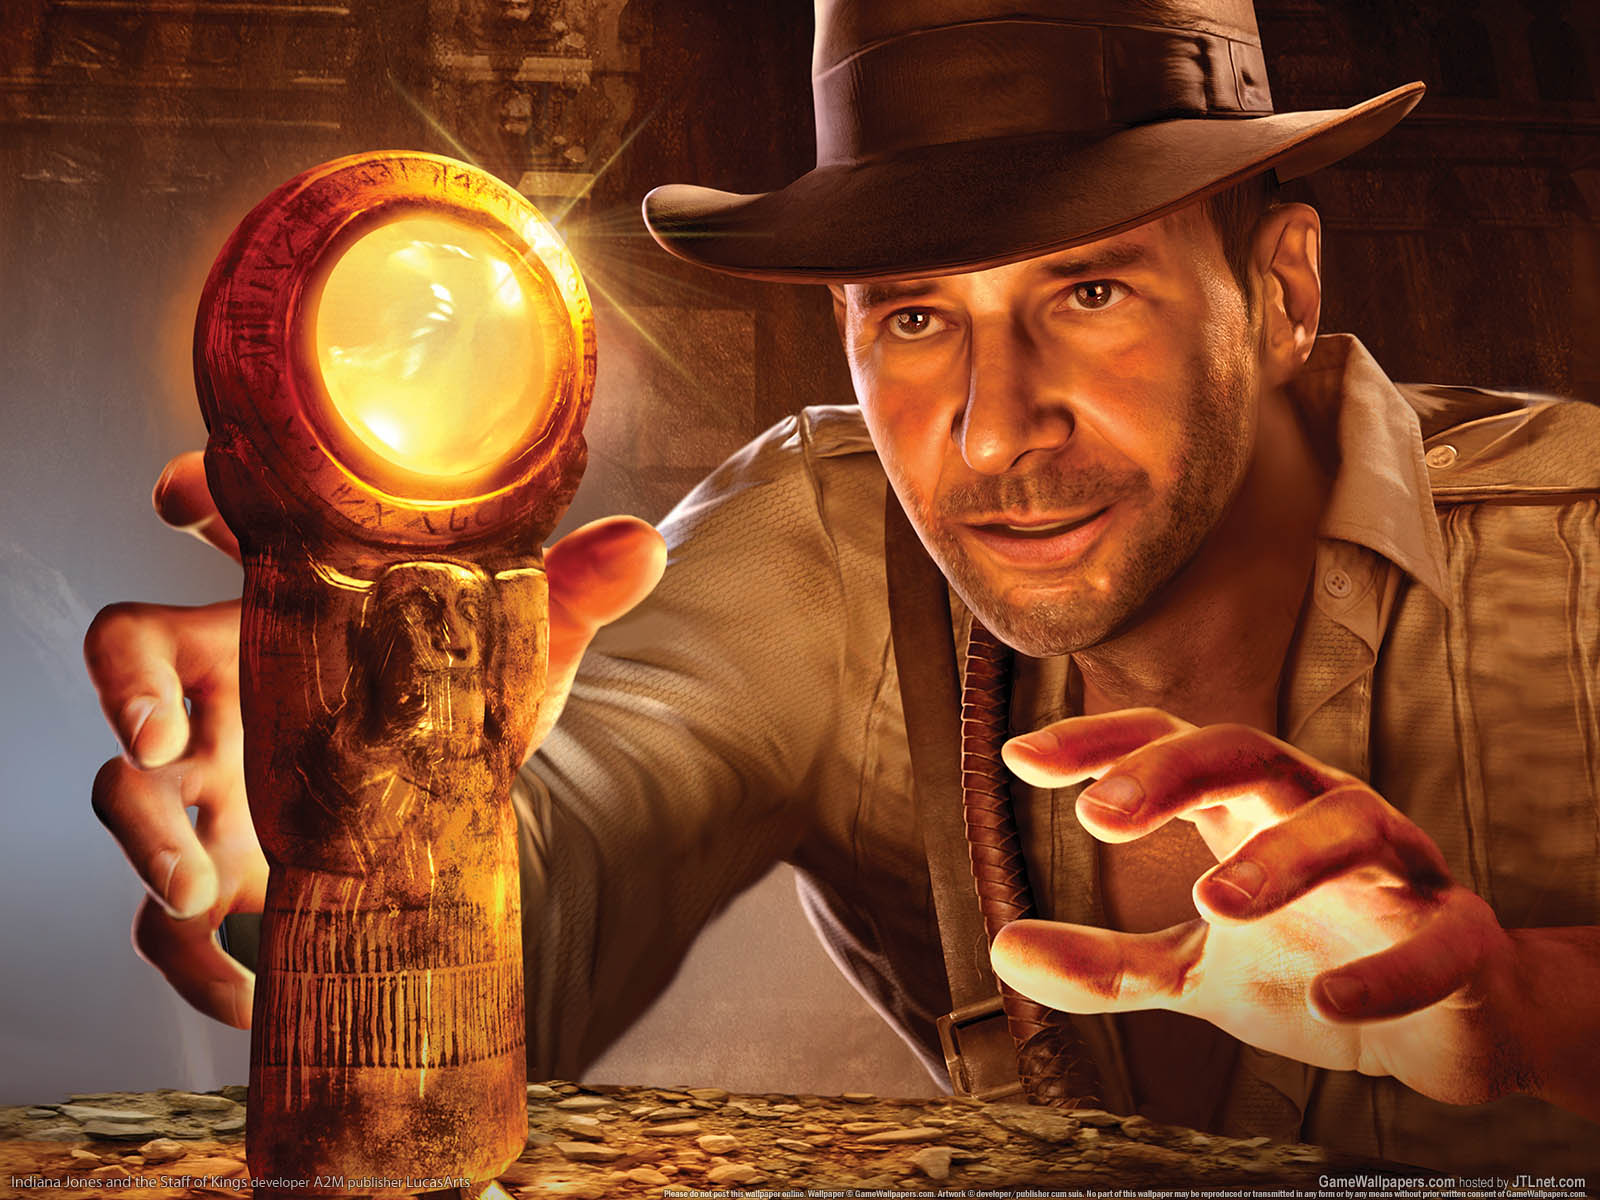 Indiana Jones Is Greatest Movie Character Of All Time